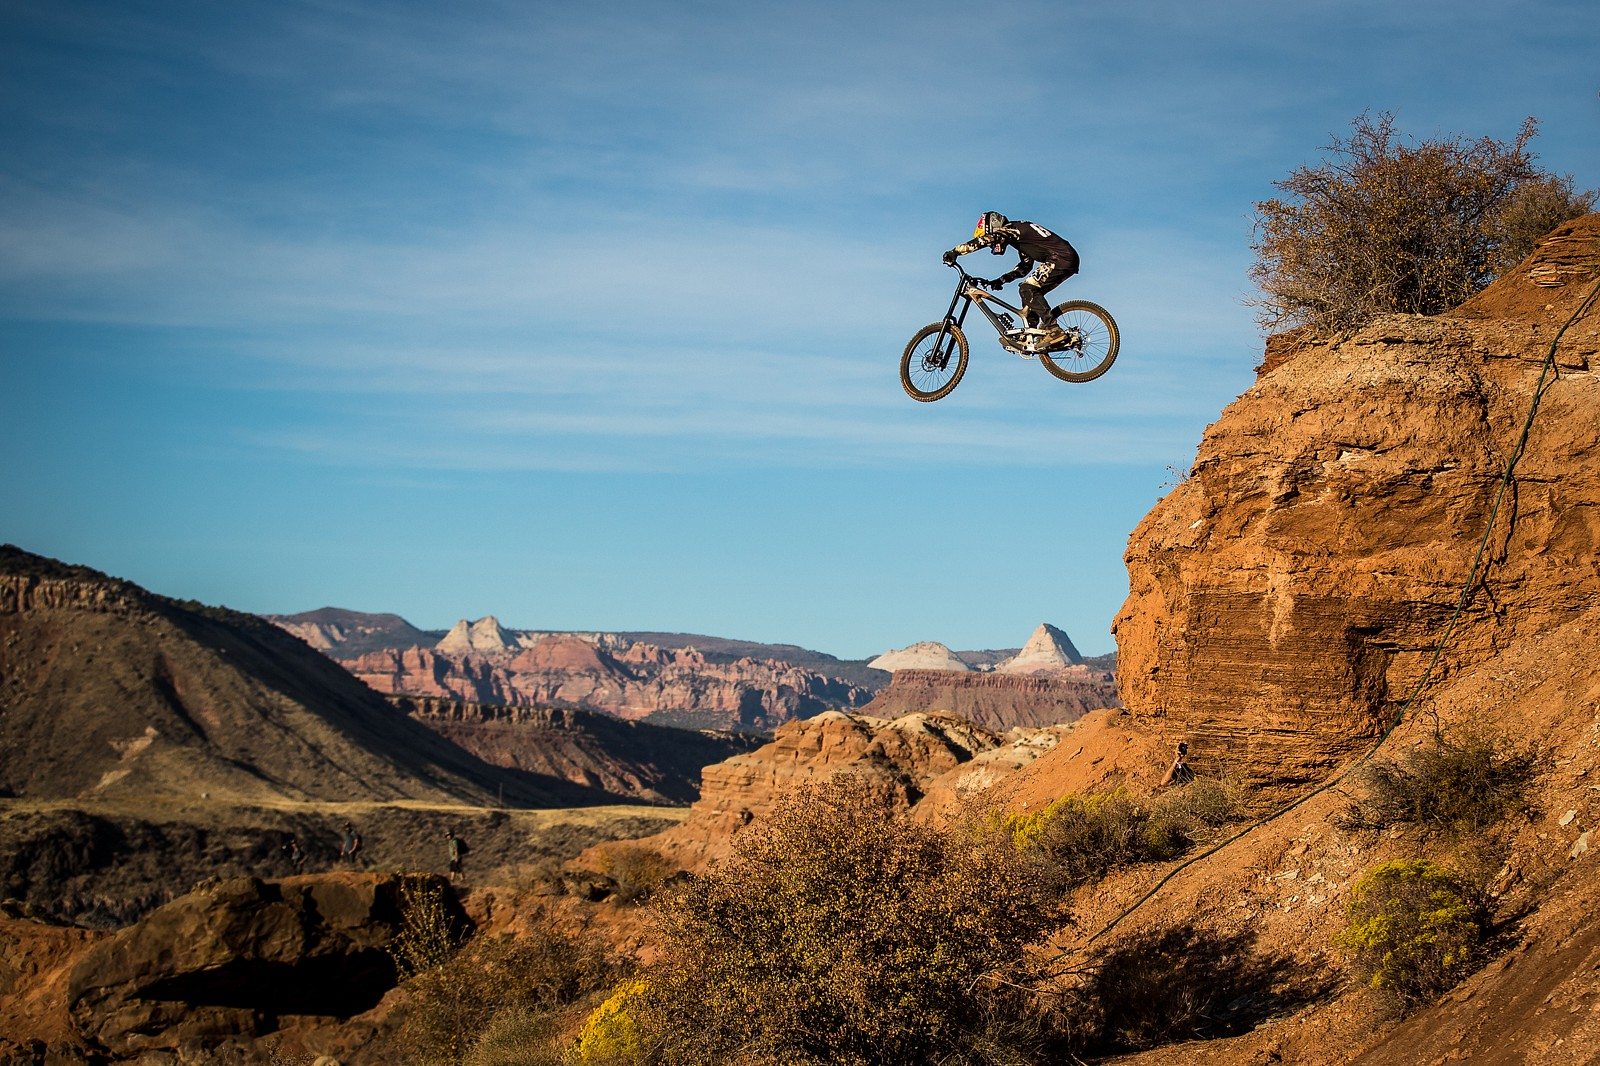 Riding and Digging at the 2019 Red Bull Rampage - Riding and Digging at the 2019 Red Bull Rampage - Mountain Biking Pictures - Vital MTB